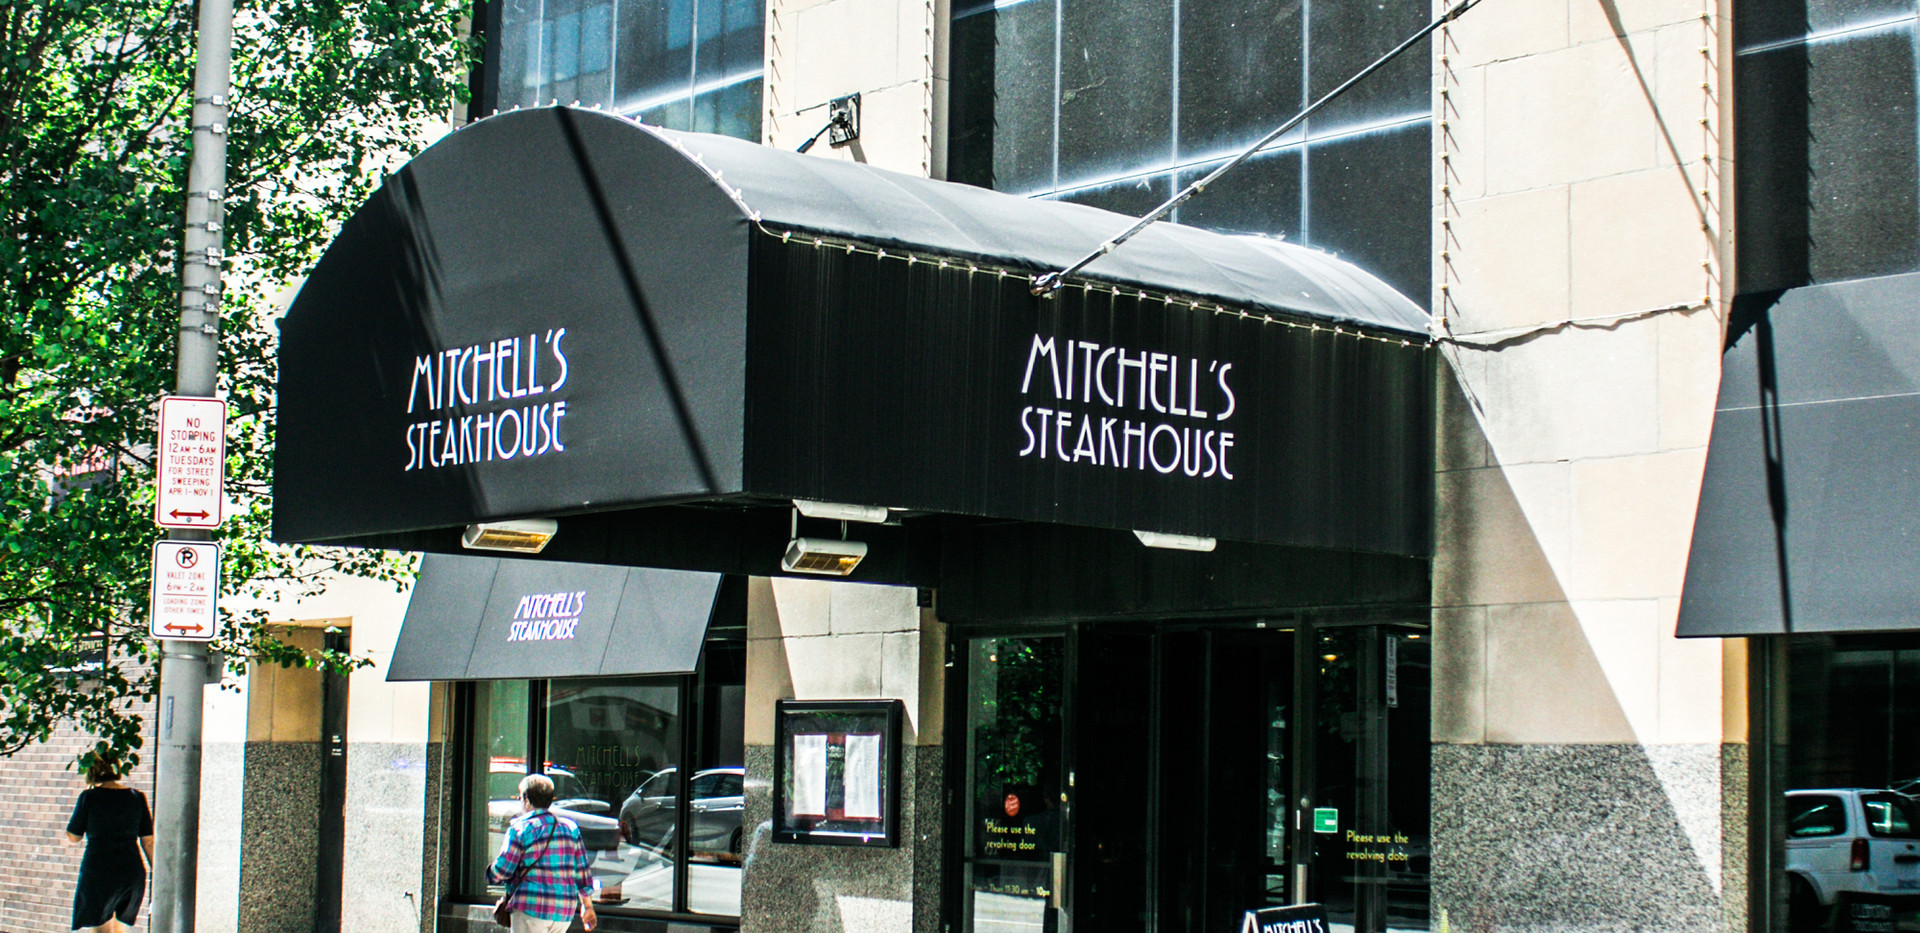 Shares building with Mitchell's Steakhouse